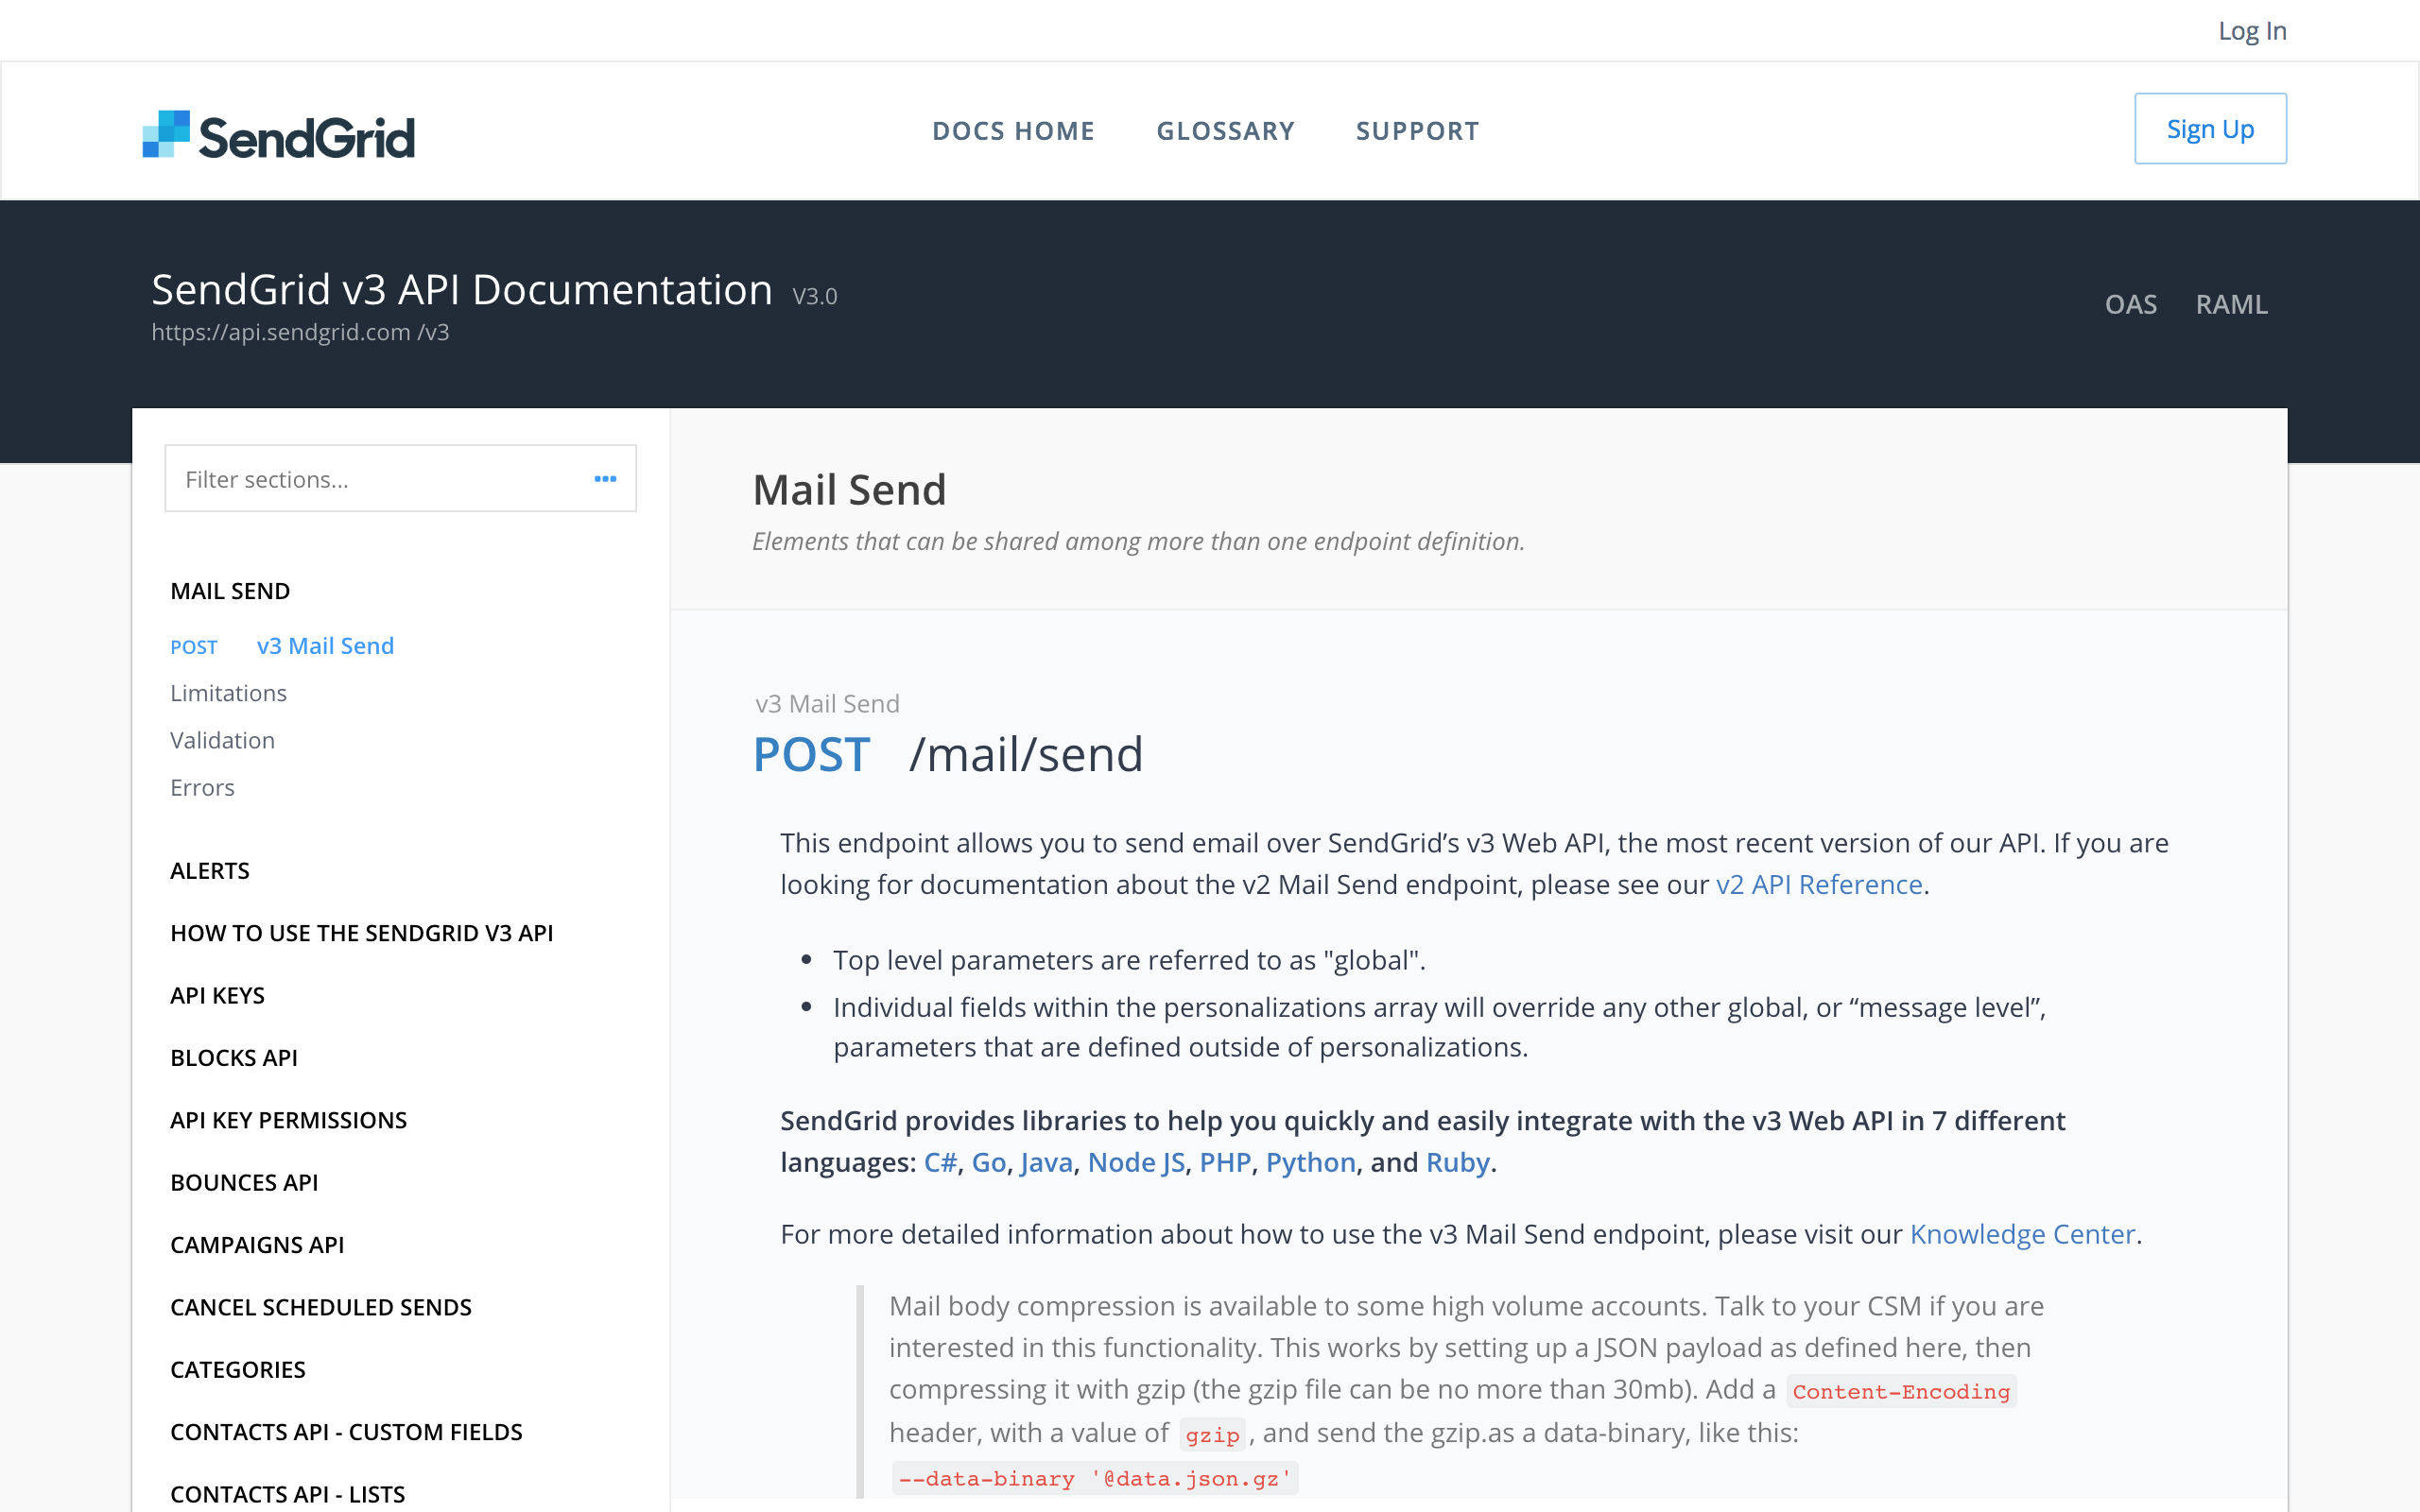 SendGrid Email API Demo - Expedite Your Integration With Robust Documentation